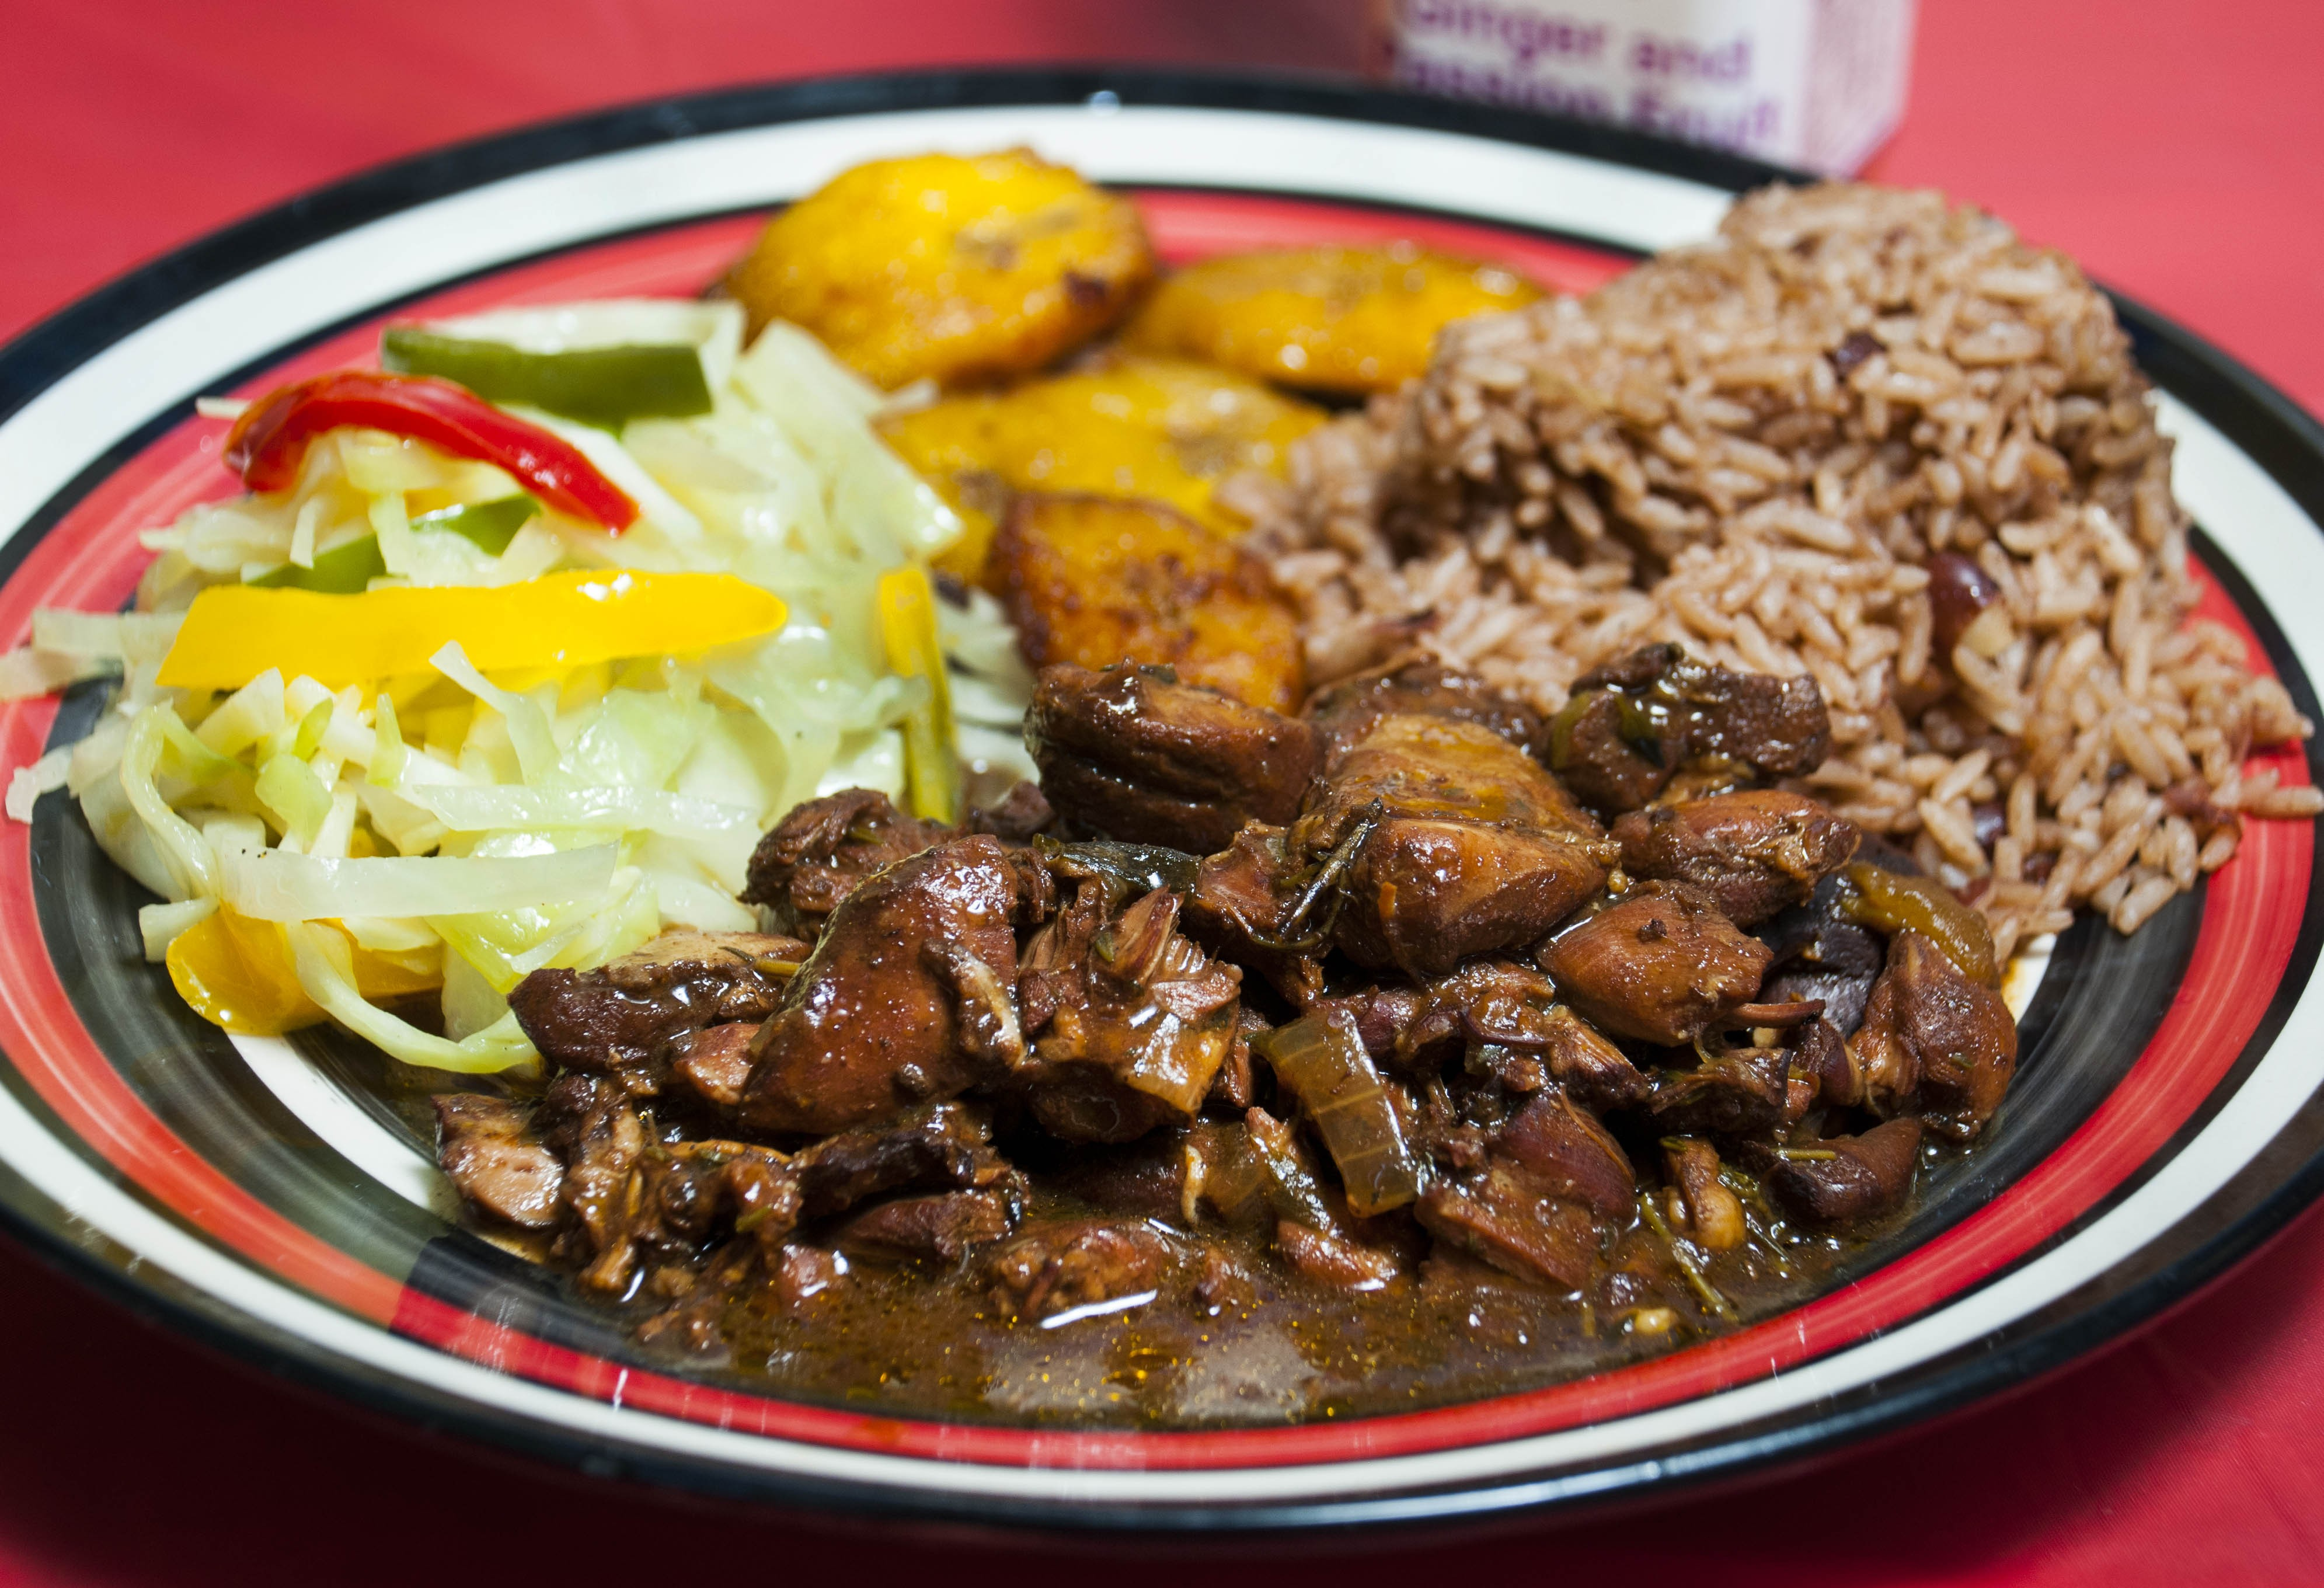 Northwest Detroit S Jamaican Pot Is Opening A New Center Location Bites